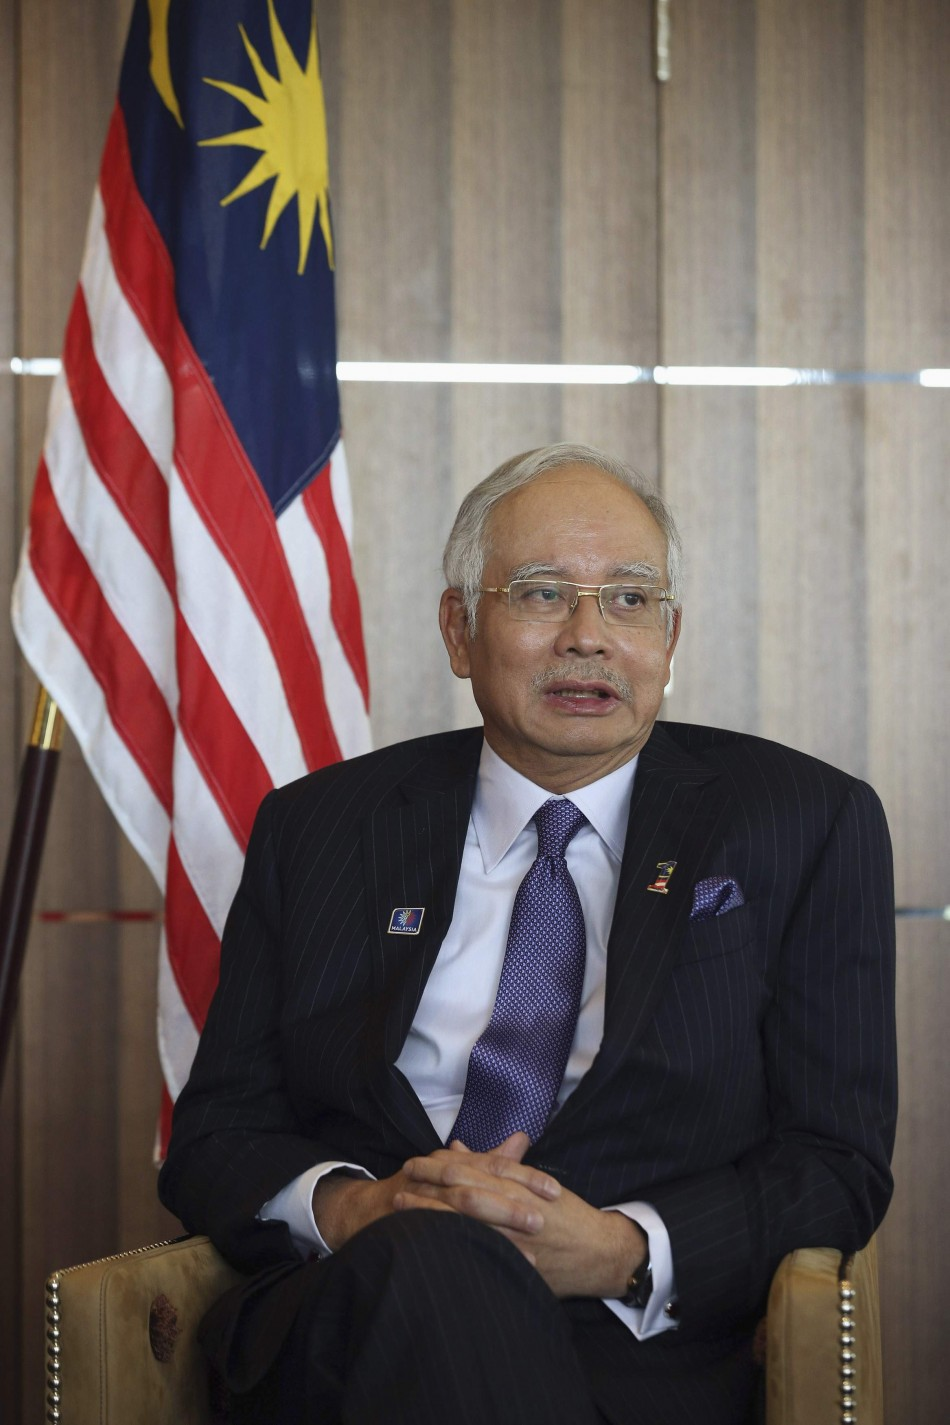 if i am prime minister of malaysia The prime minister of malaysia caused a scandal when he said he prefers quinoa to rice emily chow feb 24, 2018, 4:47 am 3,406 facebook linkedin twitter email copy link malaysian prime minister najib razak said while visiting a hospital that he prefers eating quinoa to rice.